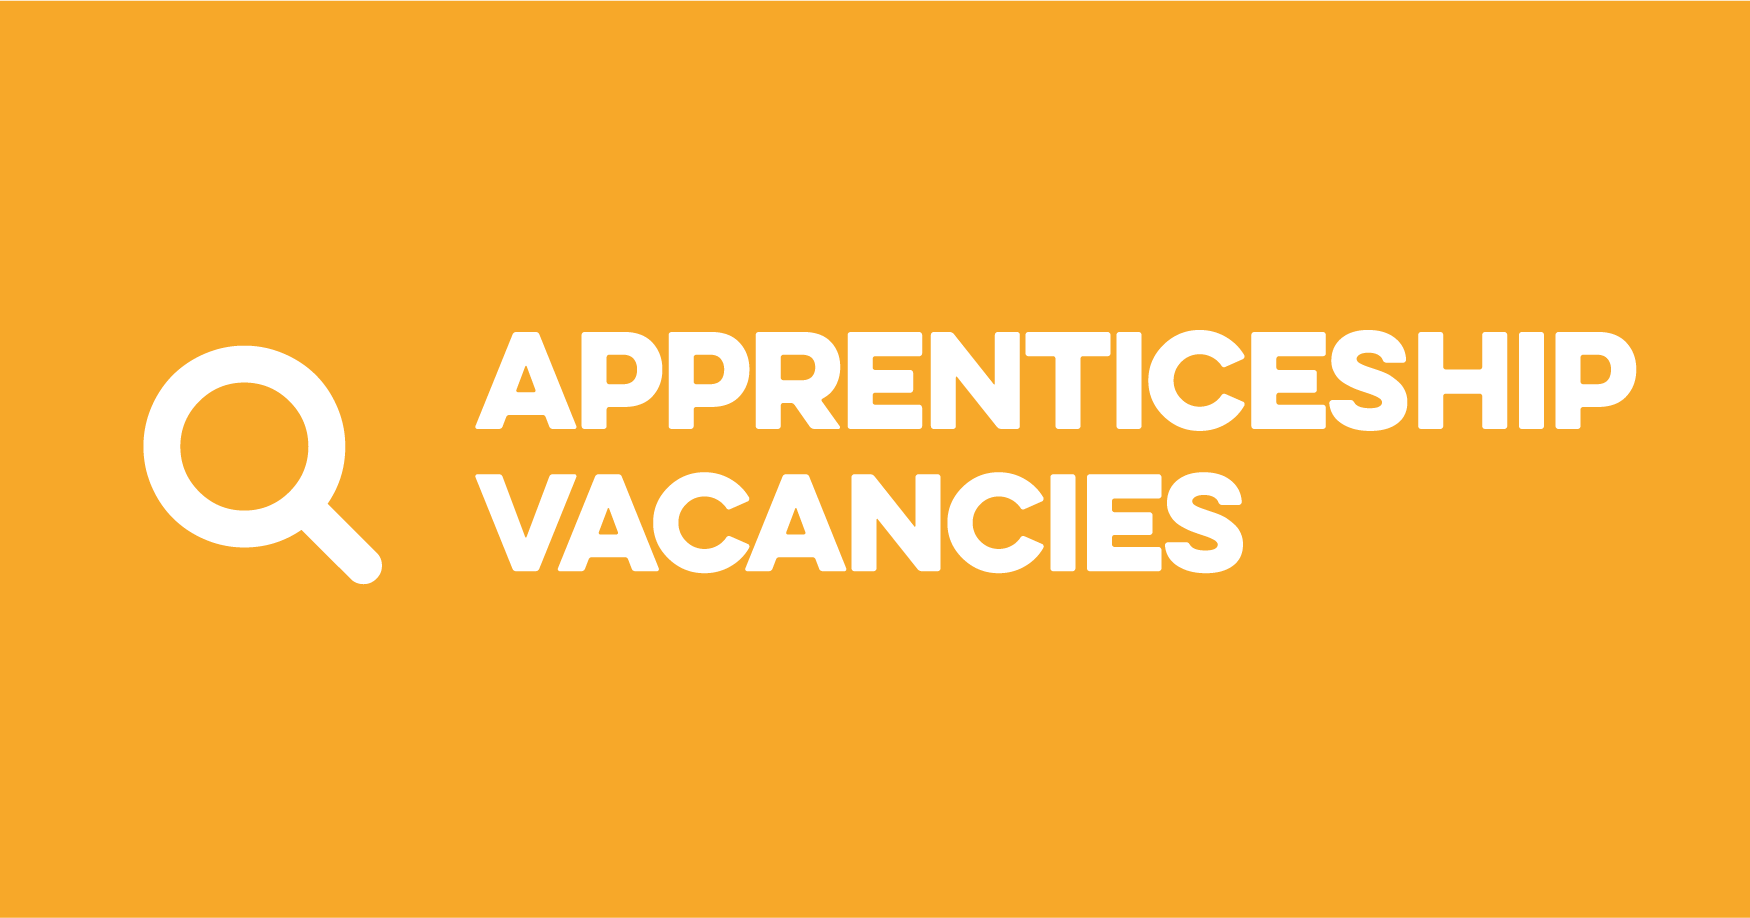 Live Vacancies and Training Apprenticeships